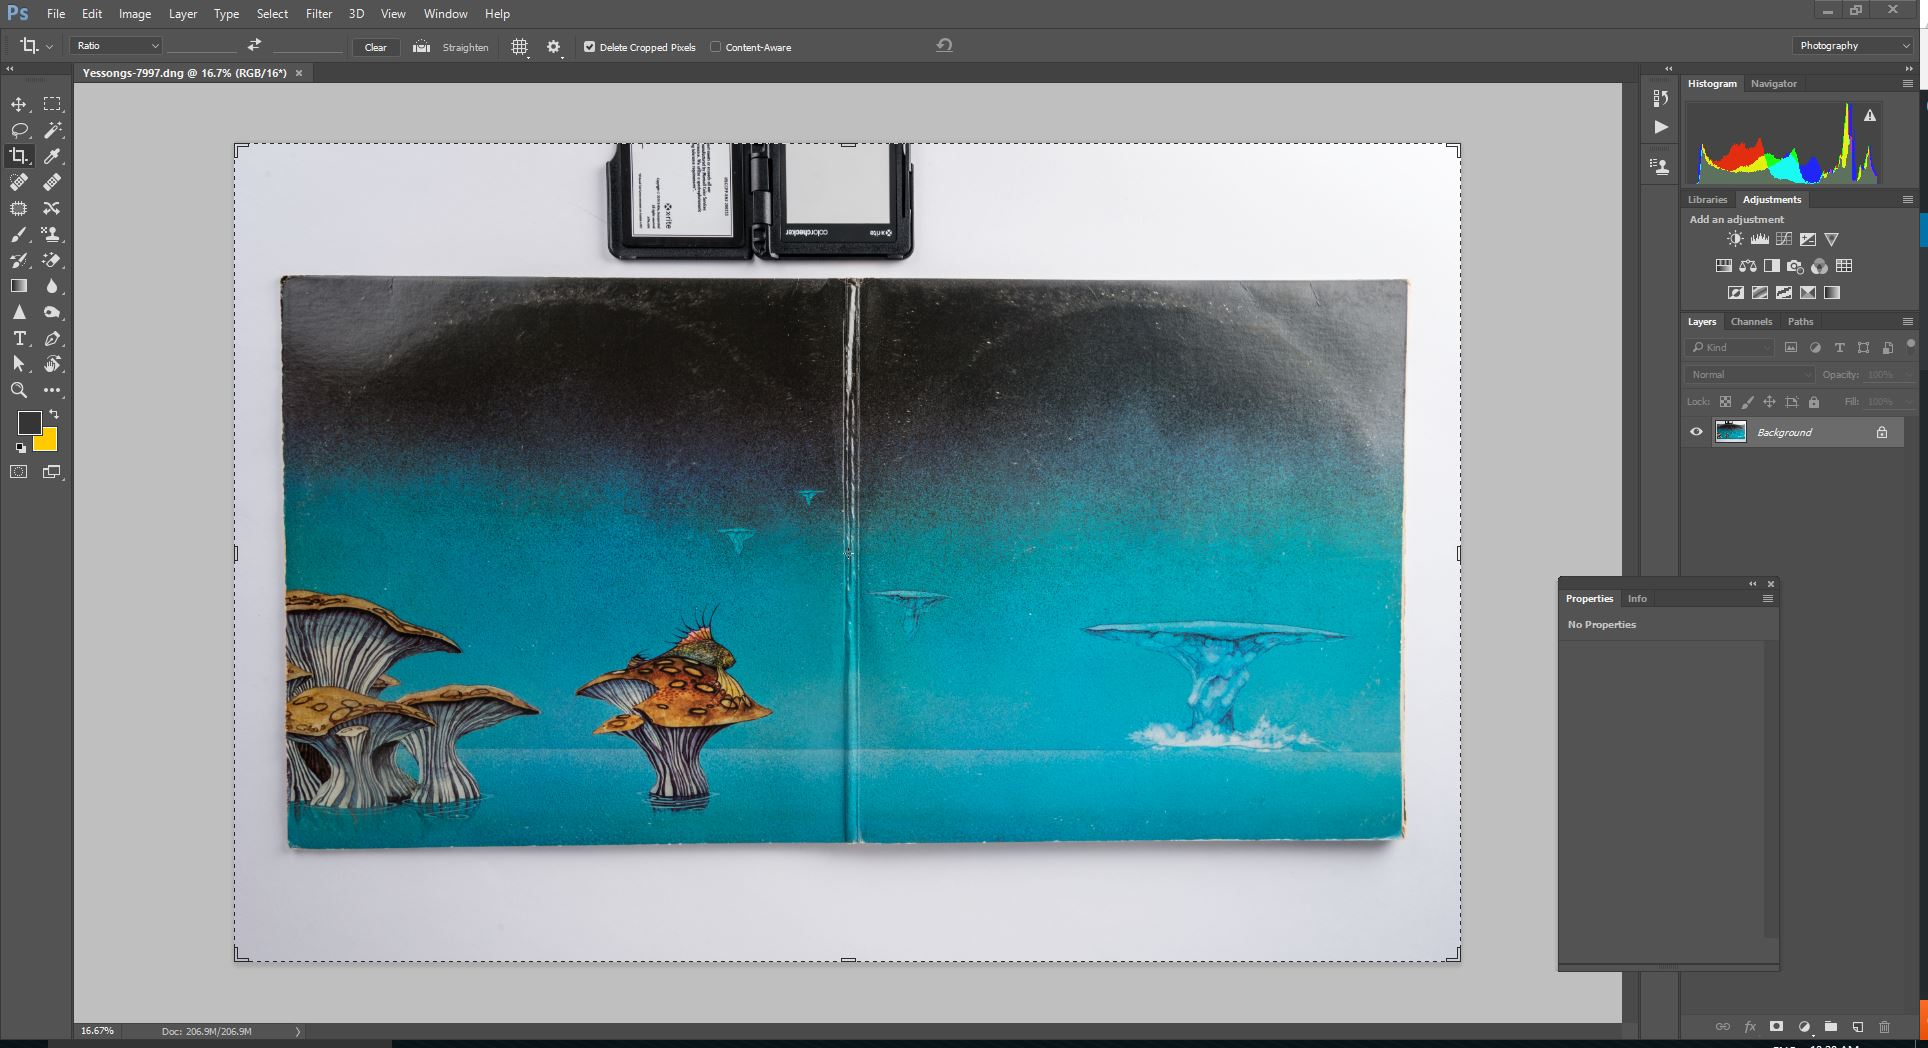 Photoshop main screen showing untouched image